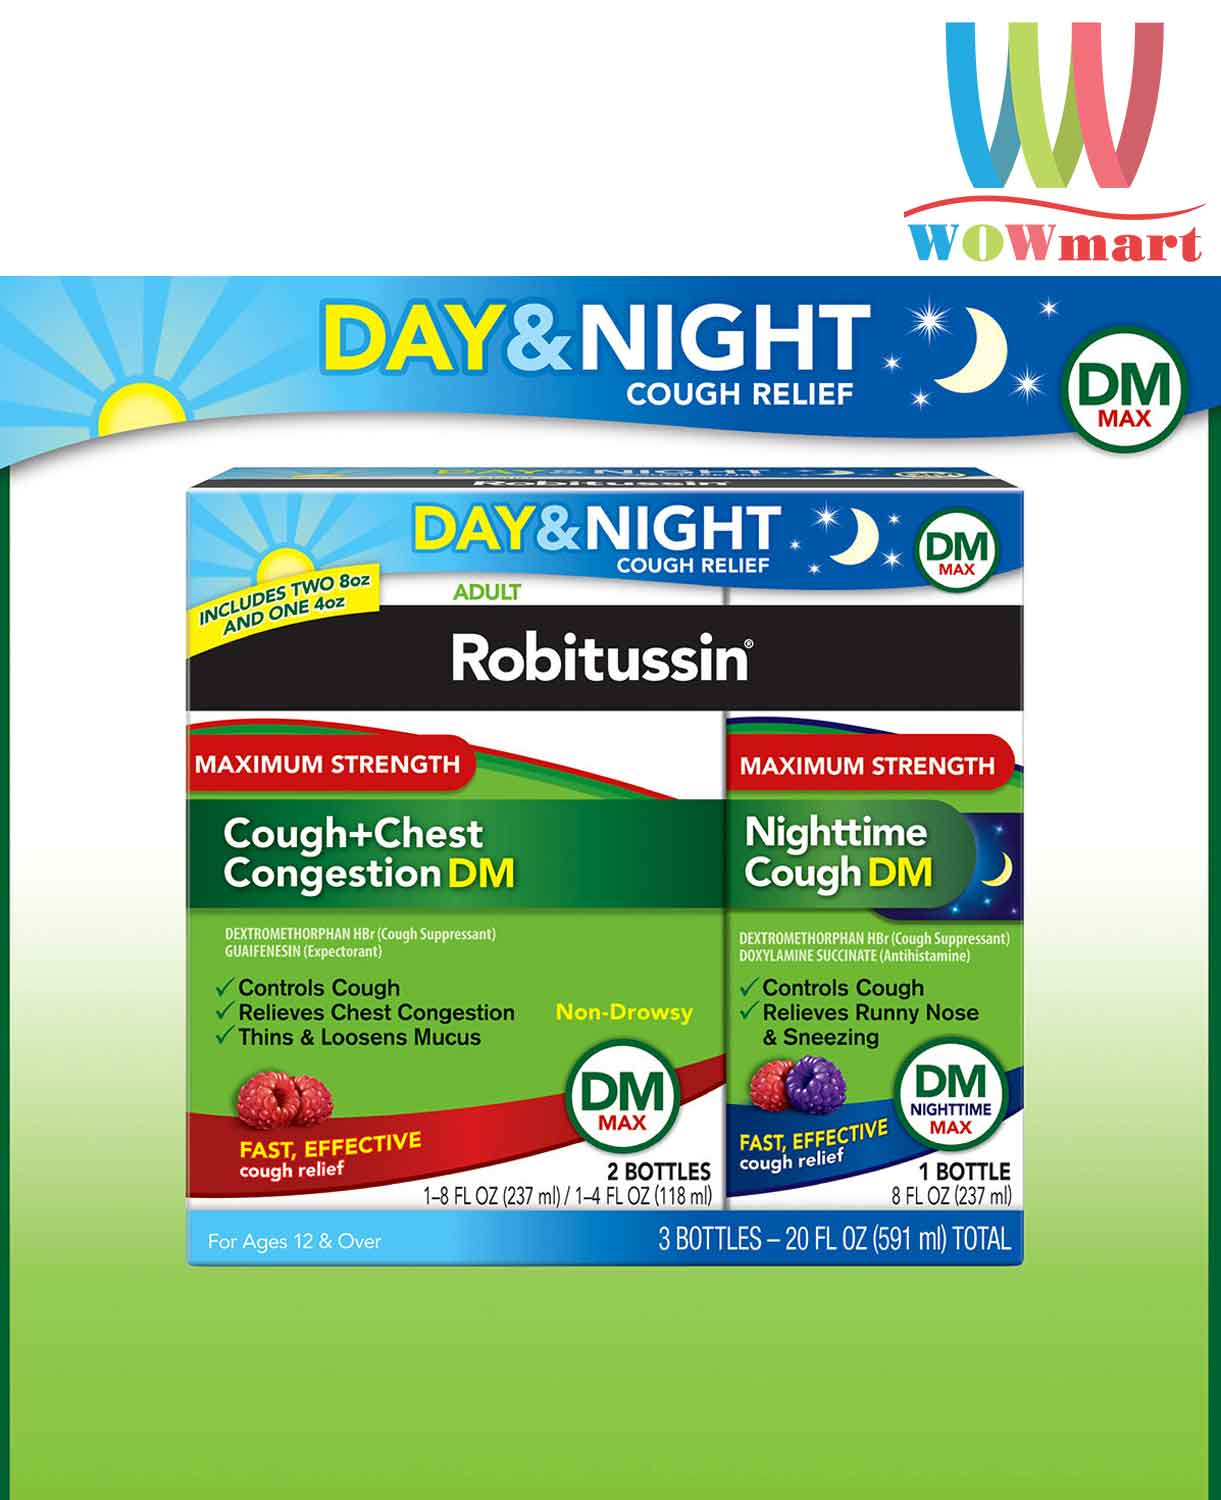 thuoc-tri-ho-dau-nguc-robitussin-coughchest-congestion-dm-max-combo-3-chai-1